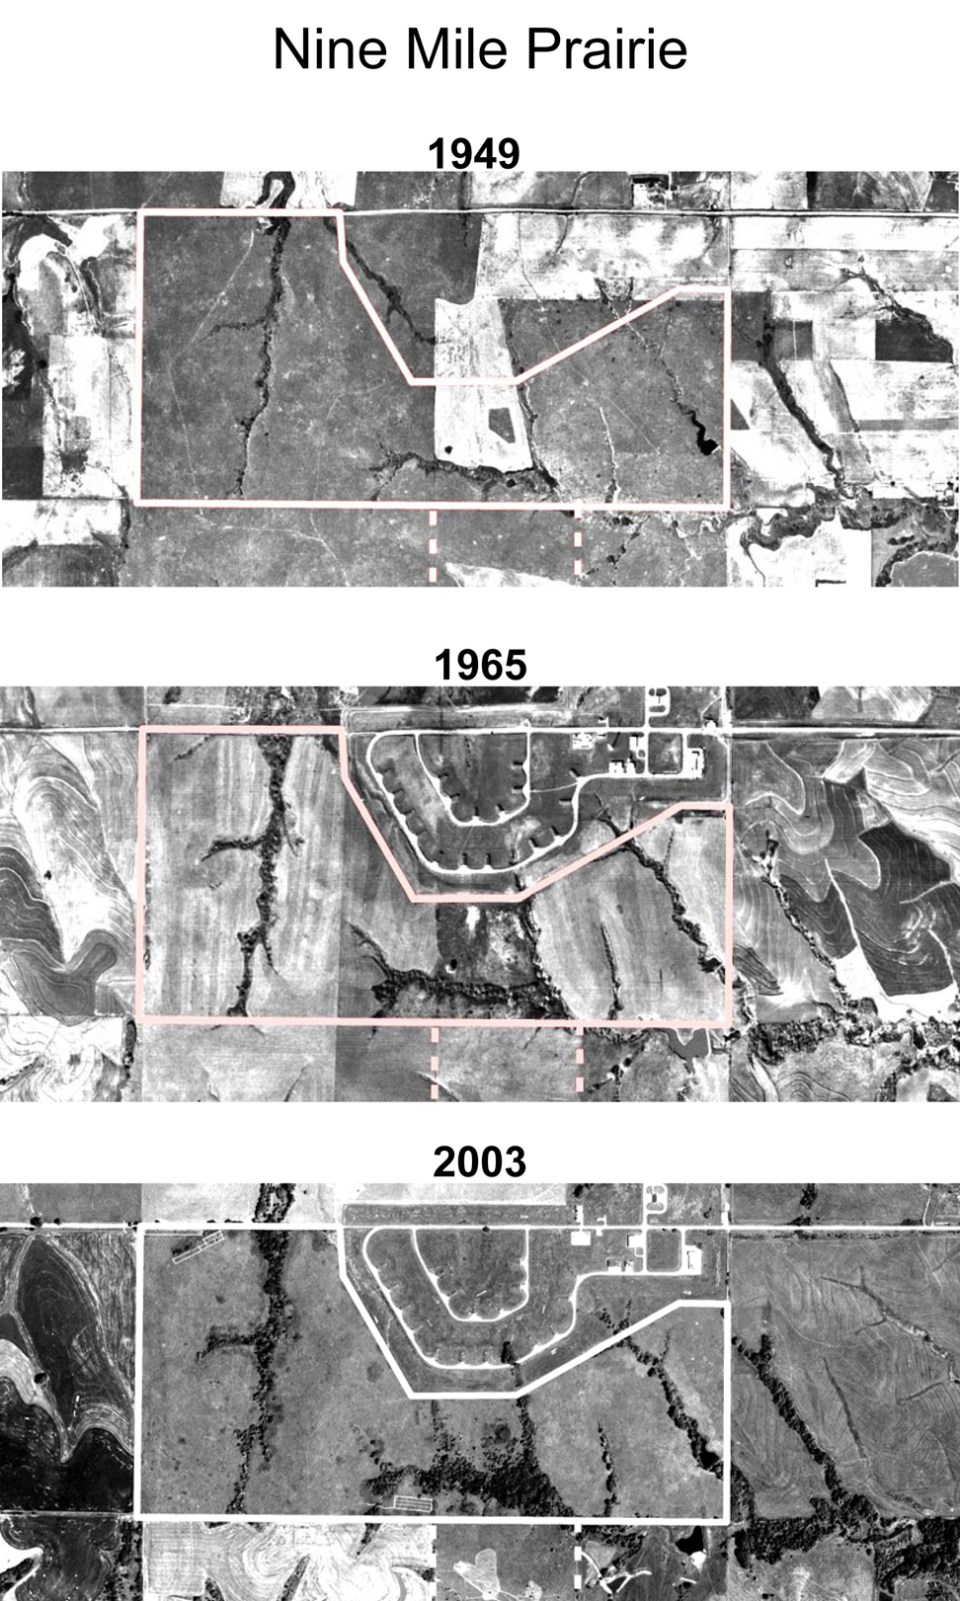 Three historic aerials provided by Dr. David Wedin, School of Natural Resources at UN-L.